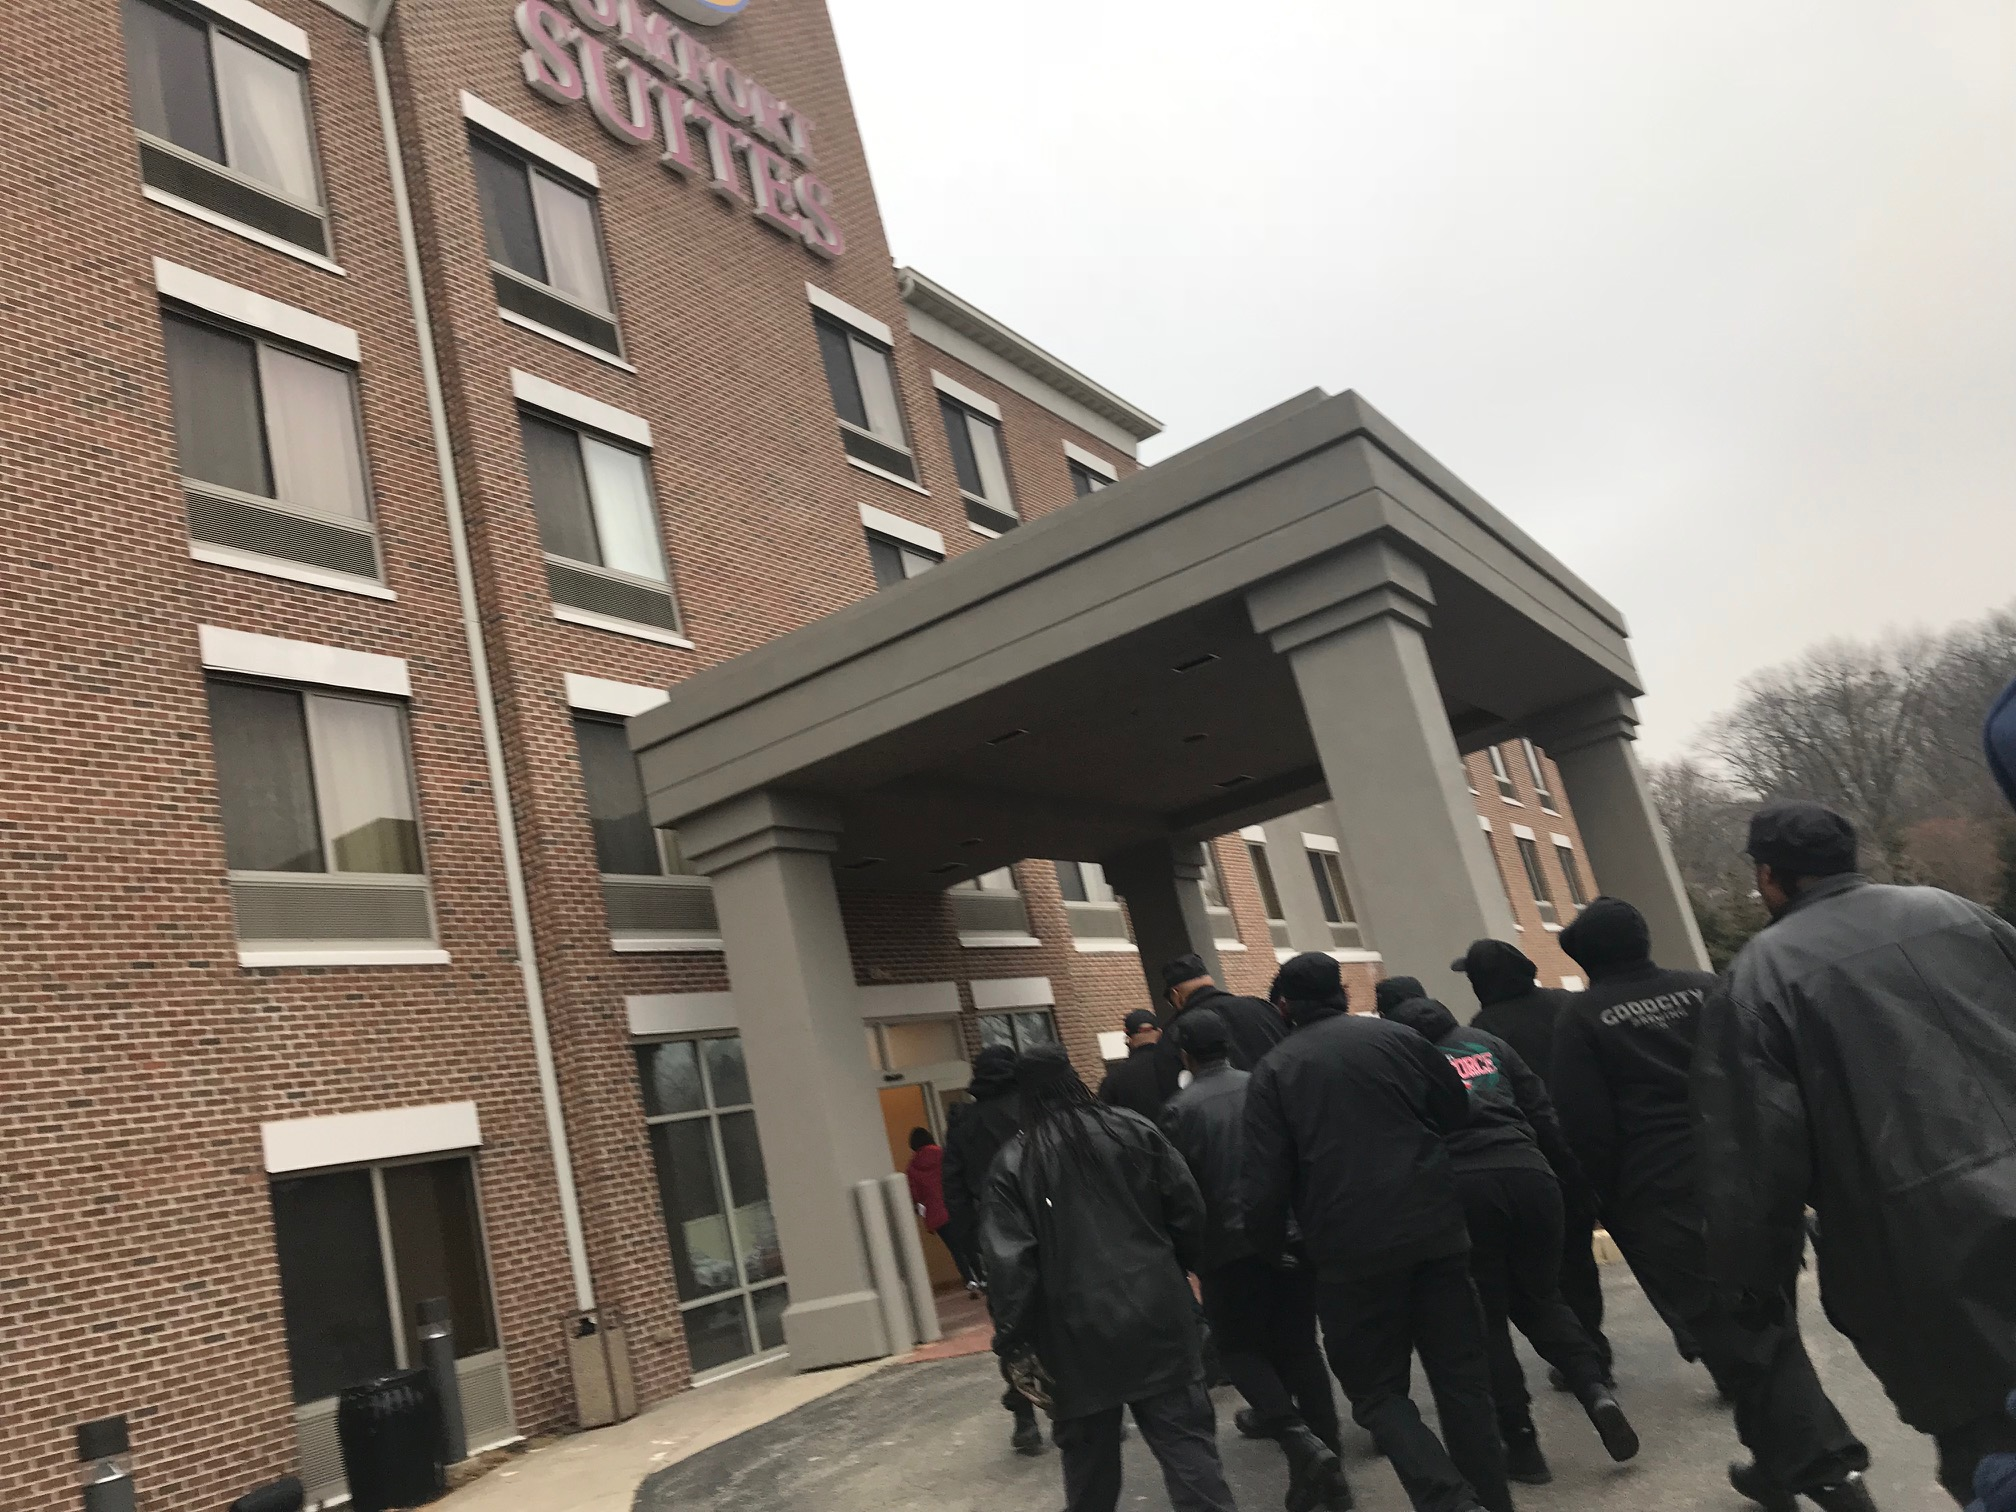 Original Black Panthers protest hotel policy, call it discriminatory